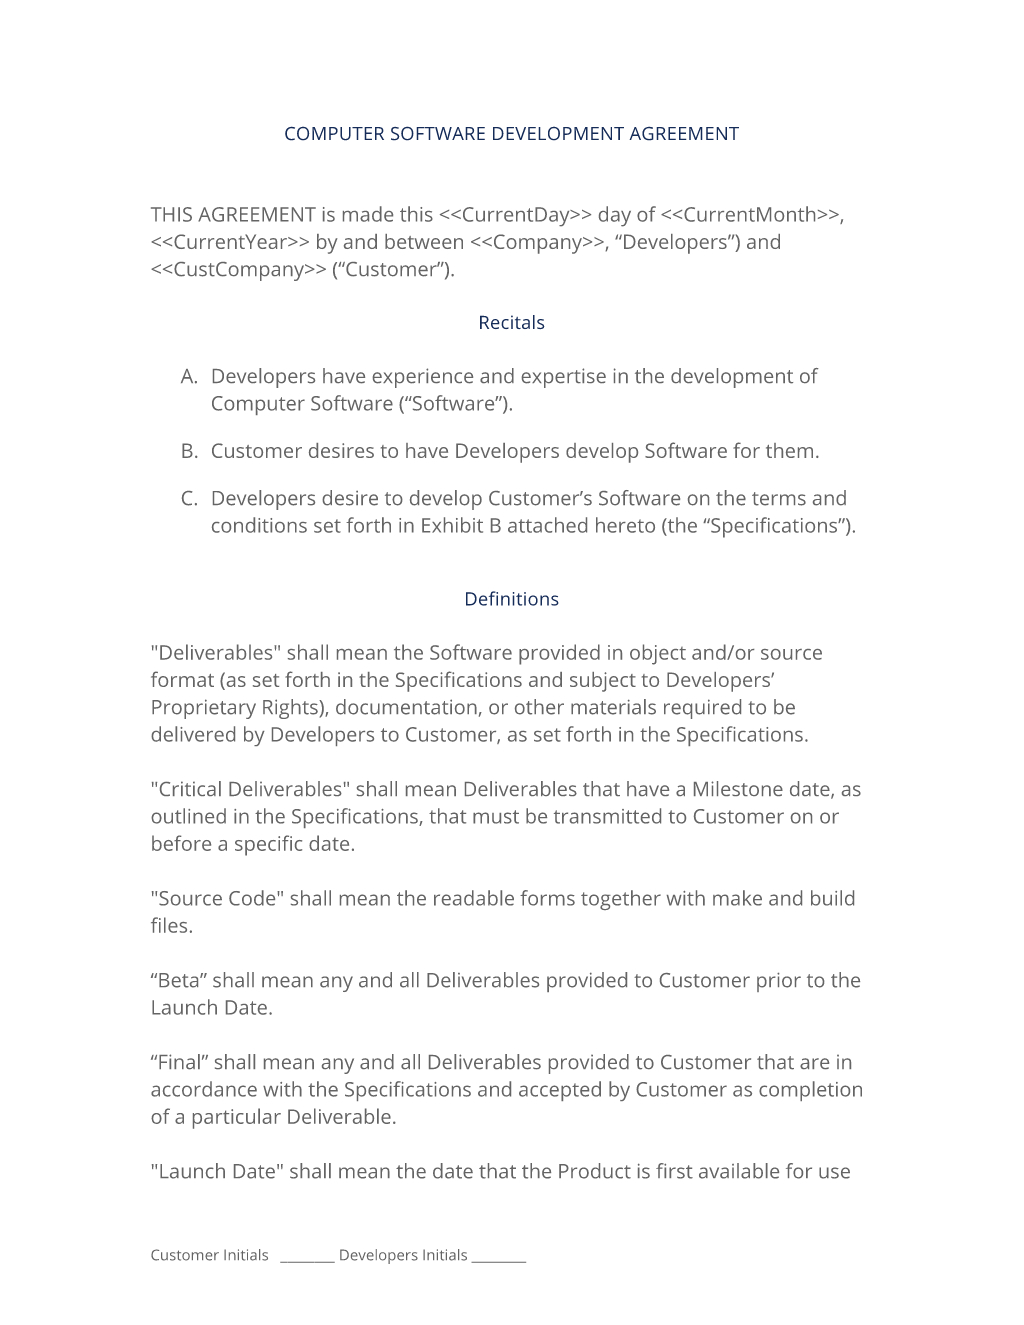 Software Agreement Contract Software Development Contract 3 Easy Steps